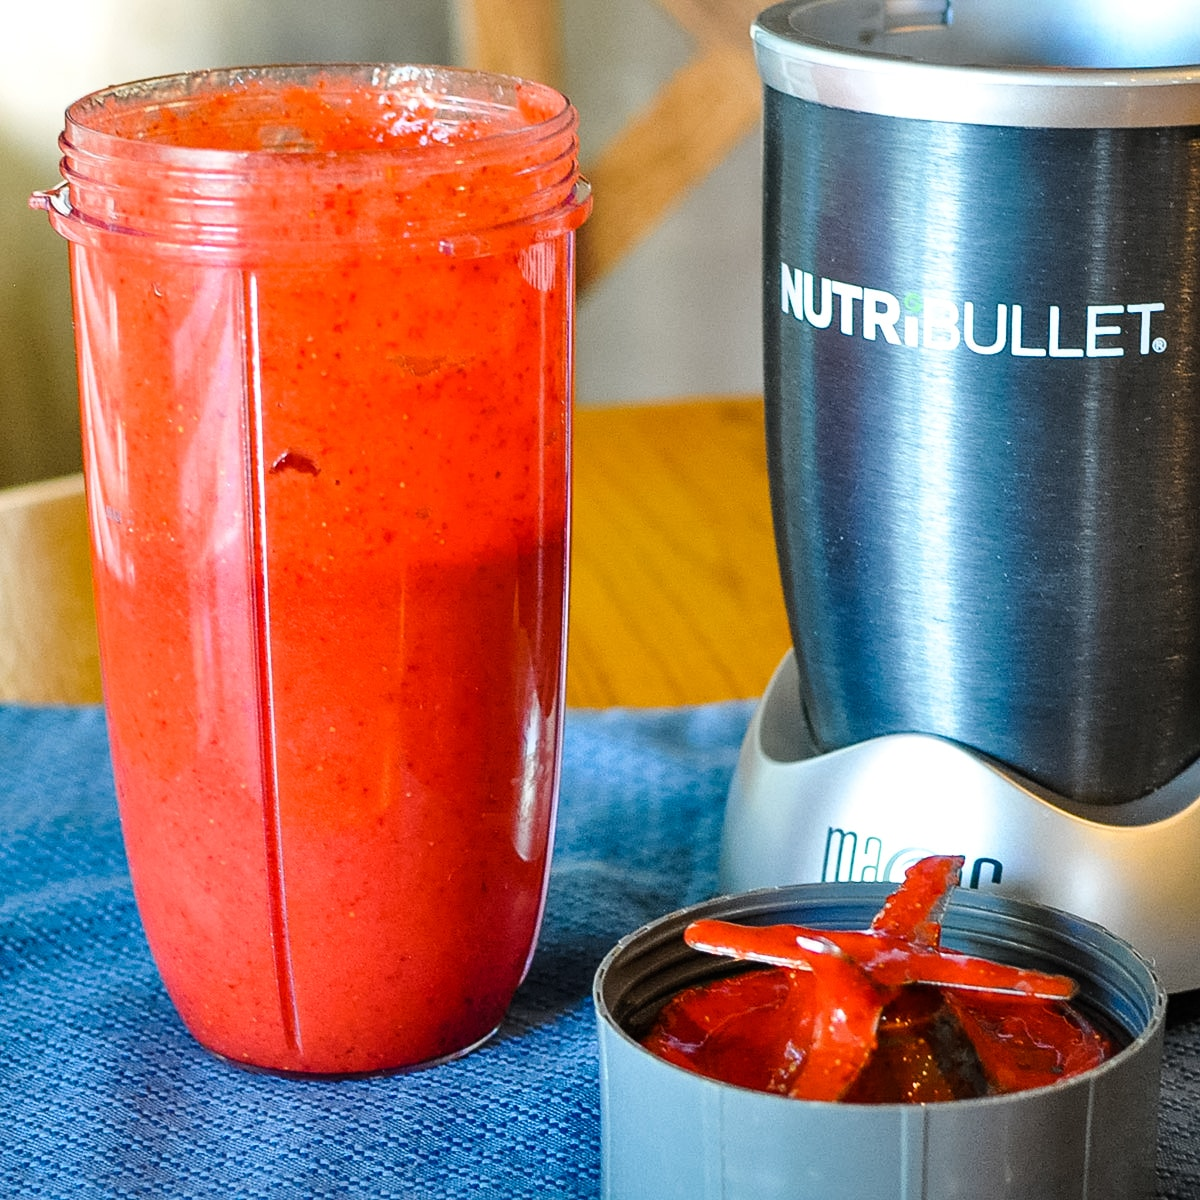 a nutri bullet canister full of fresh strawberries after being pureed